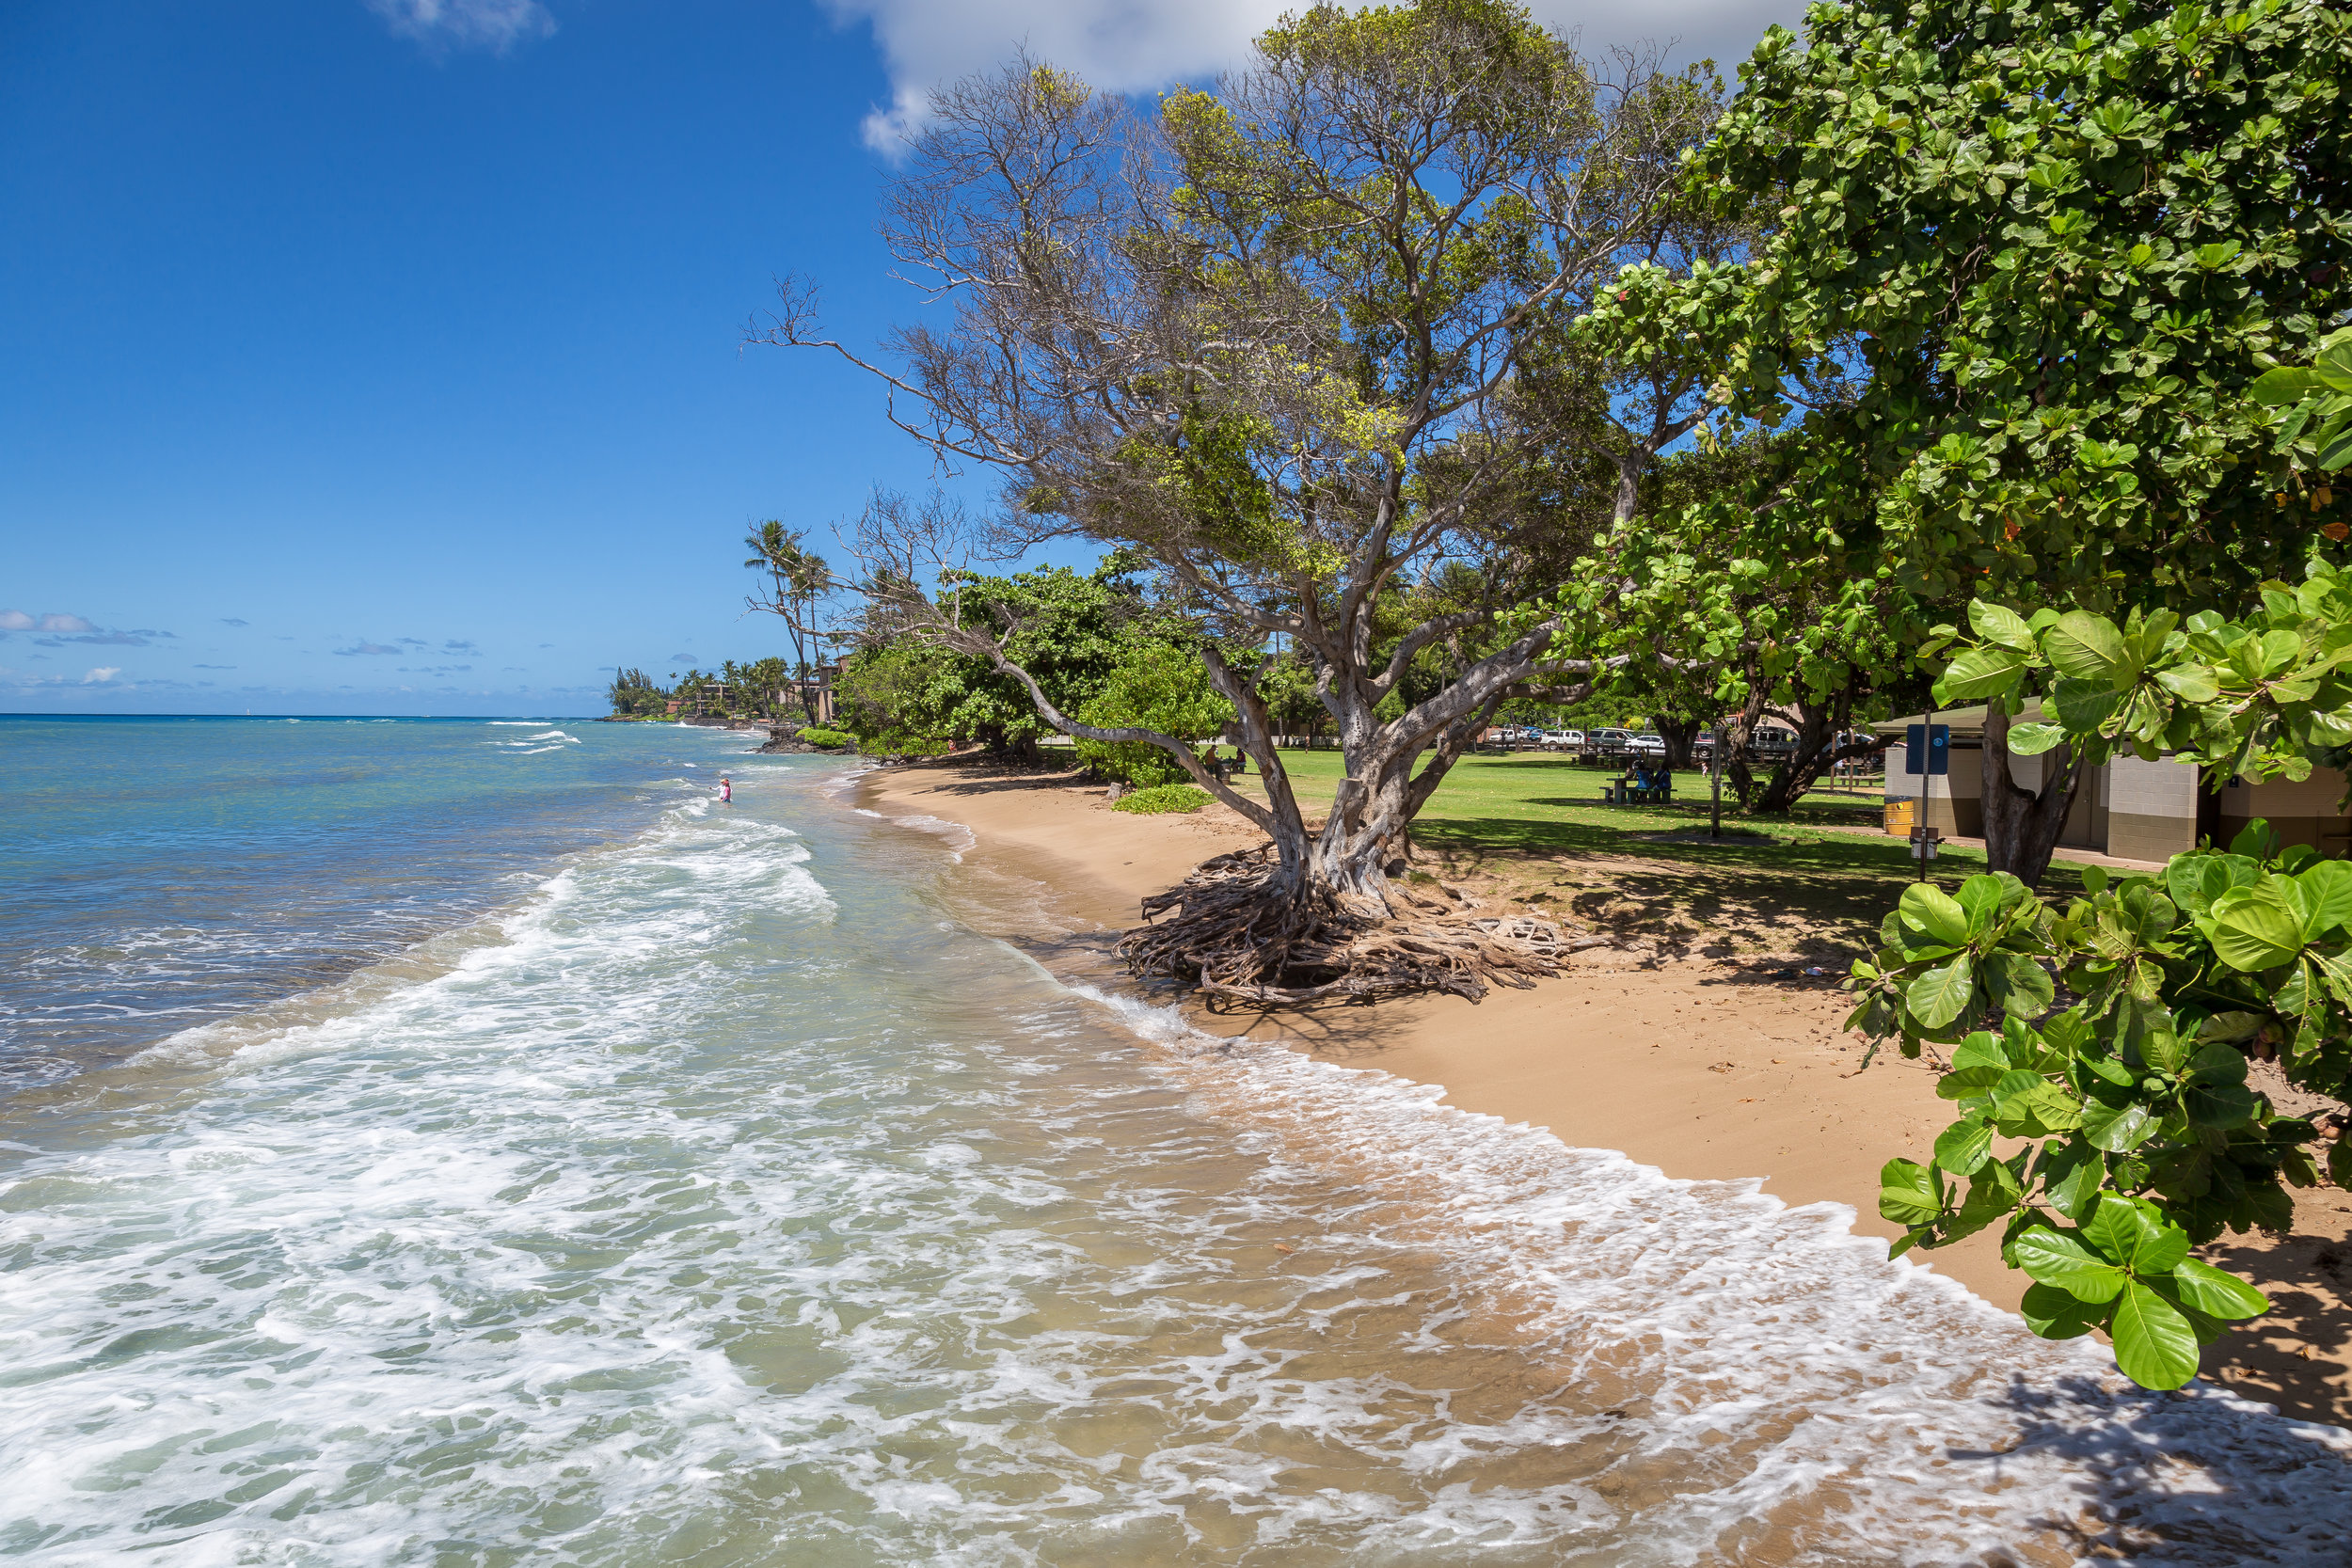 A little over a mile away, Honokawaii Beach Park offers gentle surf and large field for children to play.